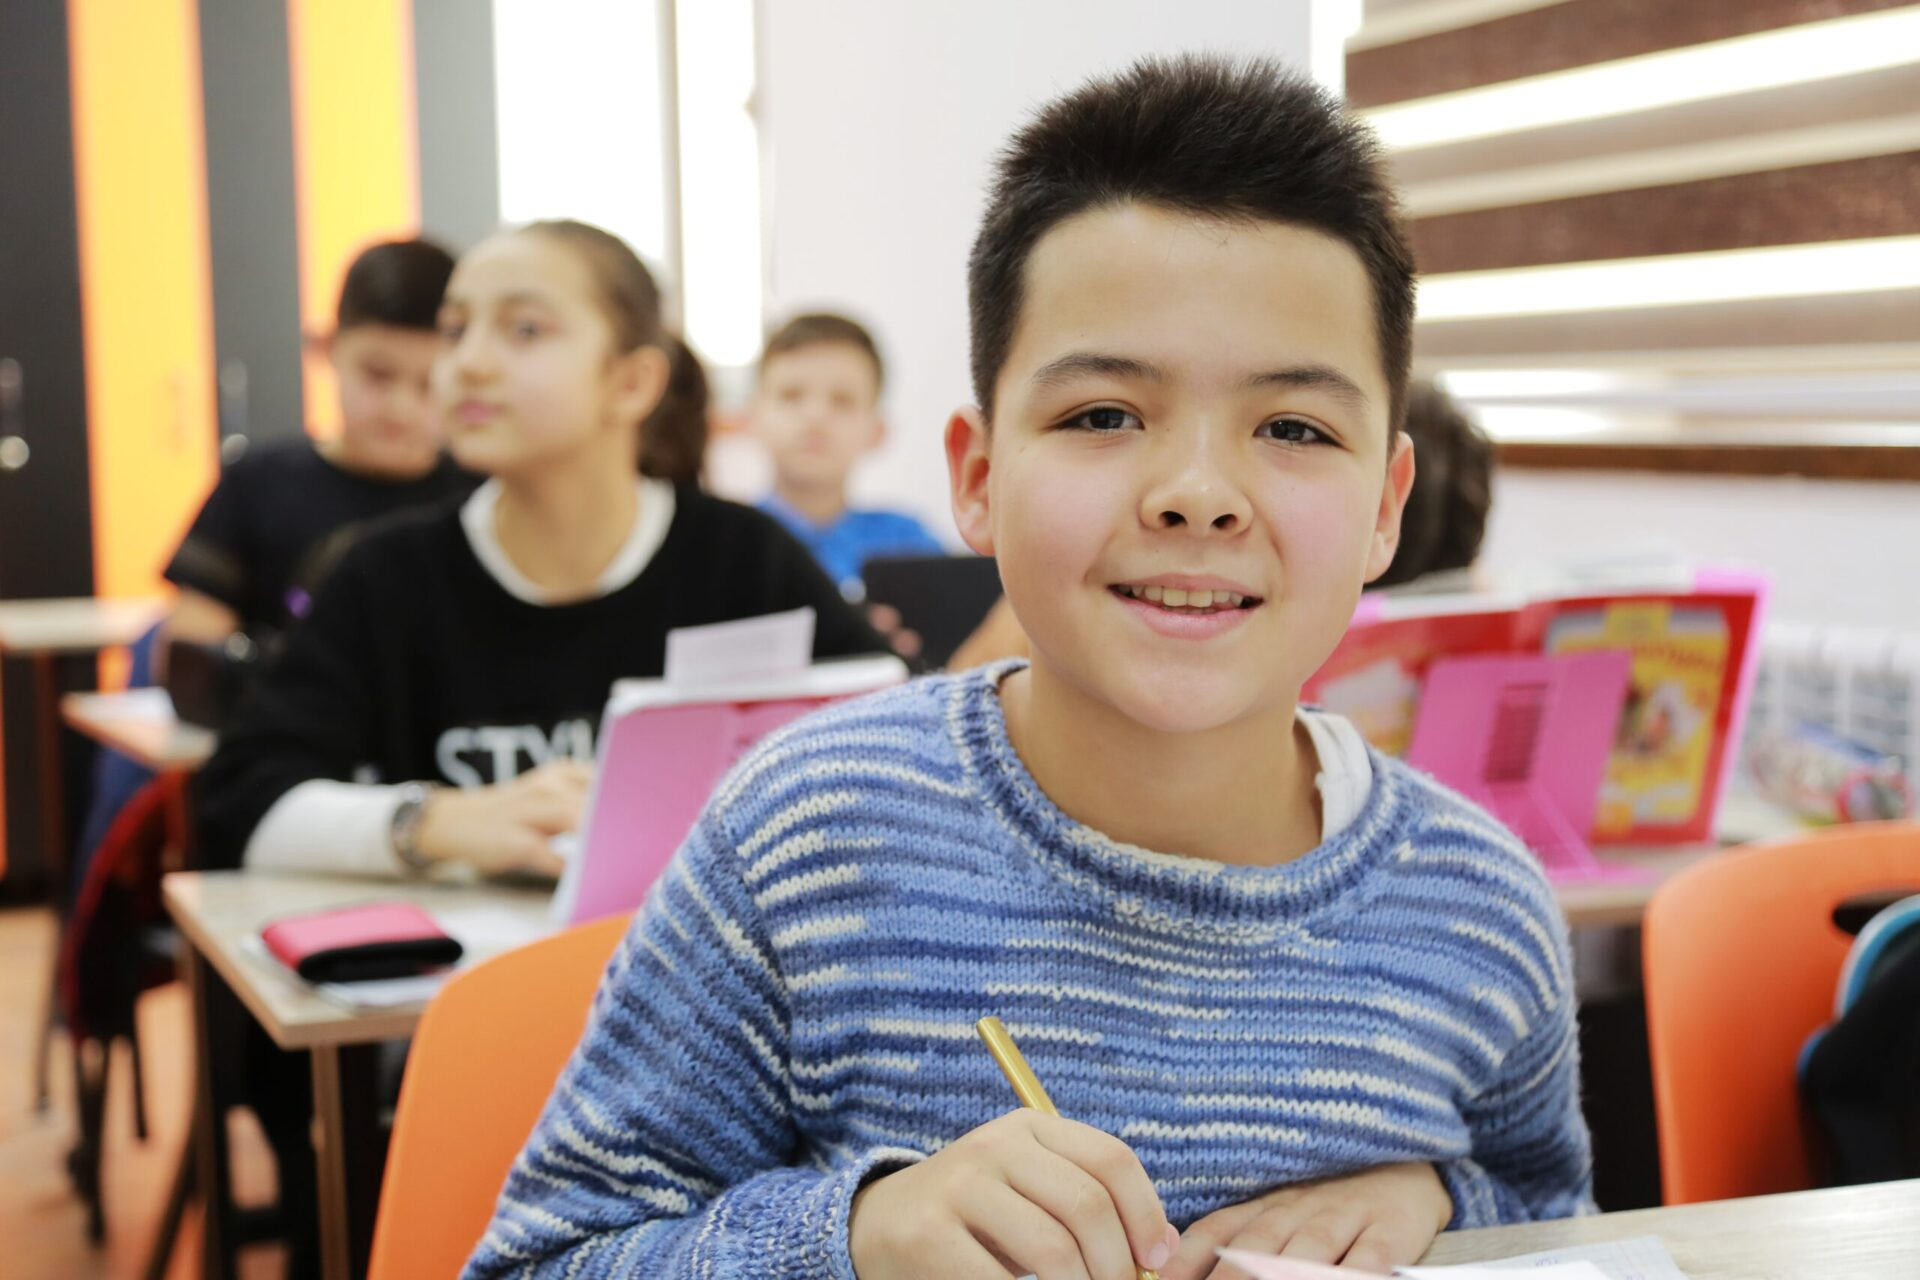 Can My Child Attend Public School on a Visitor Visa?